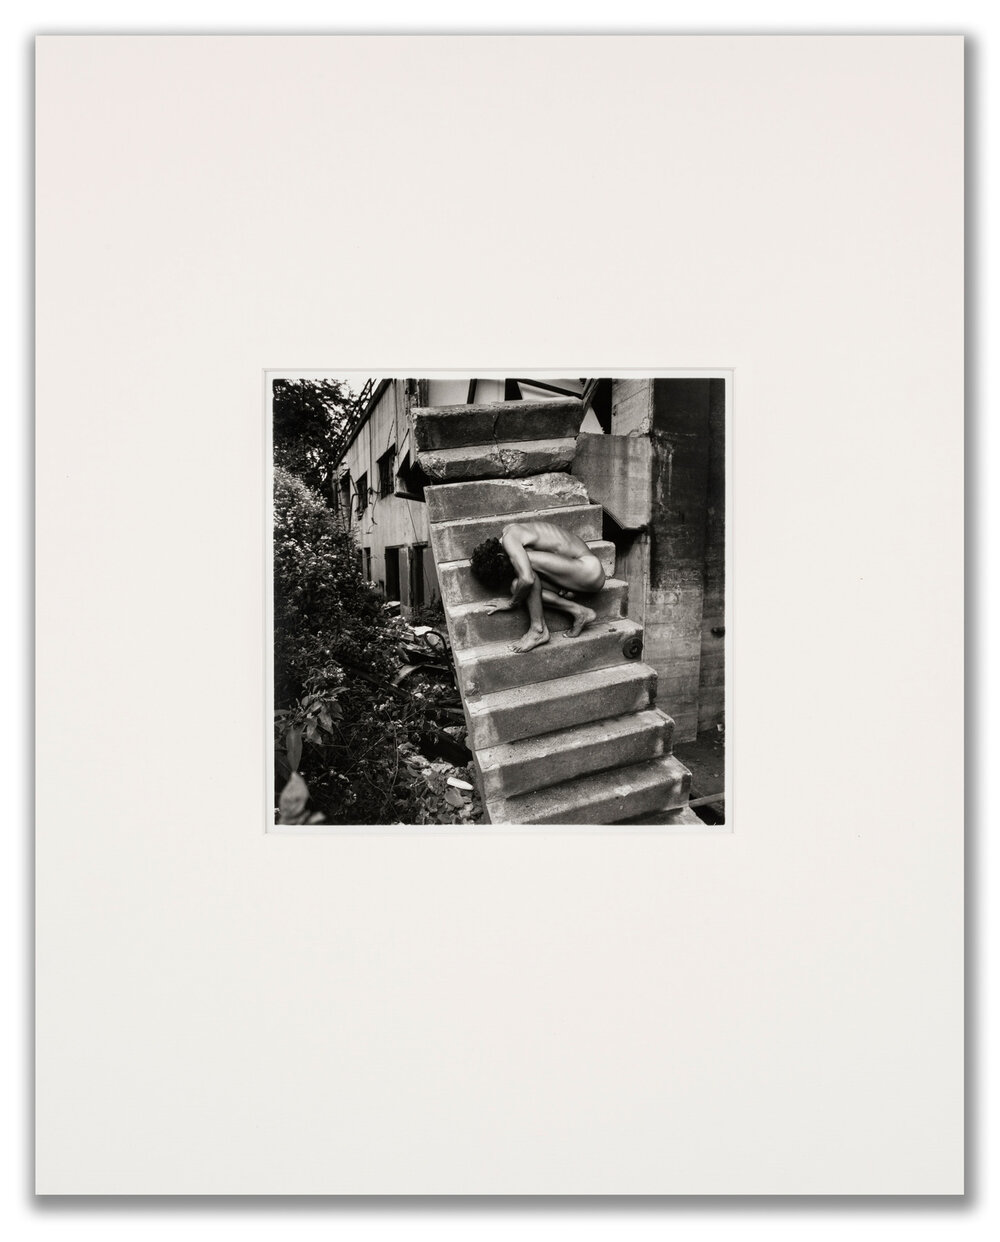 Arthur Tress, (American b.1940), Nude on the Stairs, 1970.